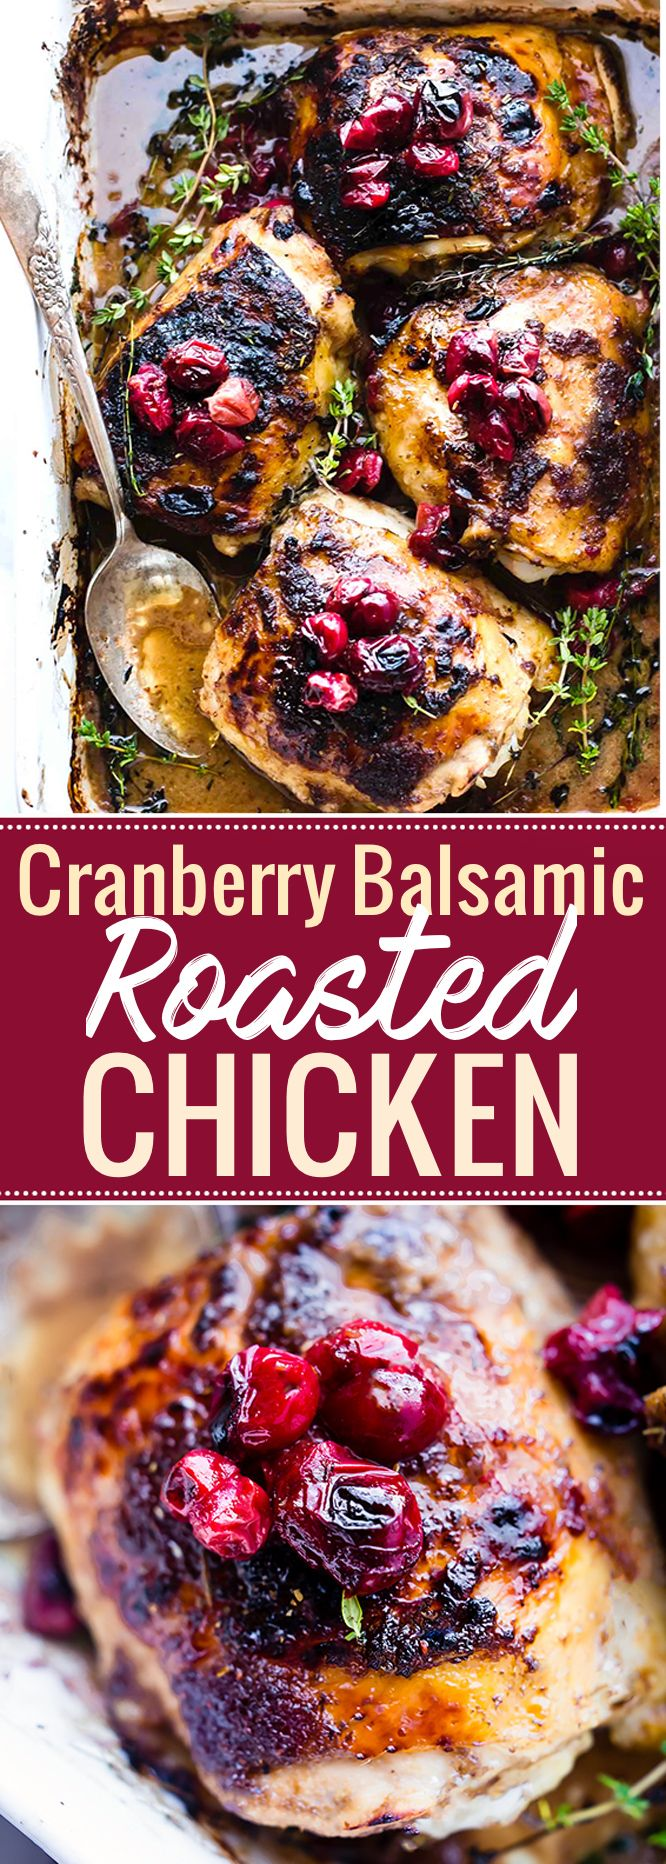 Balsamic Roasted Chicken with Cranberries prepped and cooked in ONE PAN! Yes, your holiday table is complete. This Paleo Cranberry Balsamic Roasted Chicken is a simple yet healthy dinner.